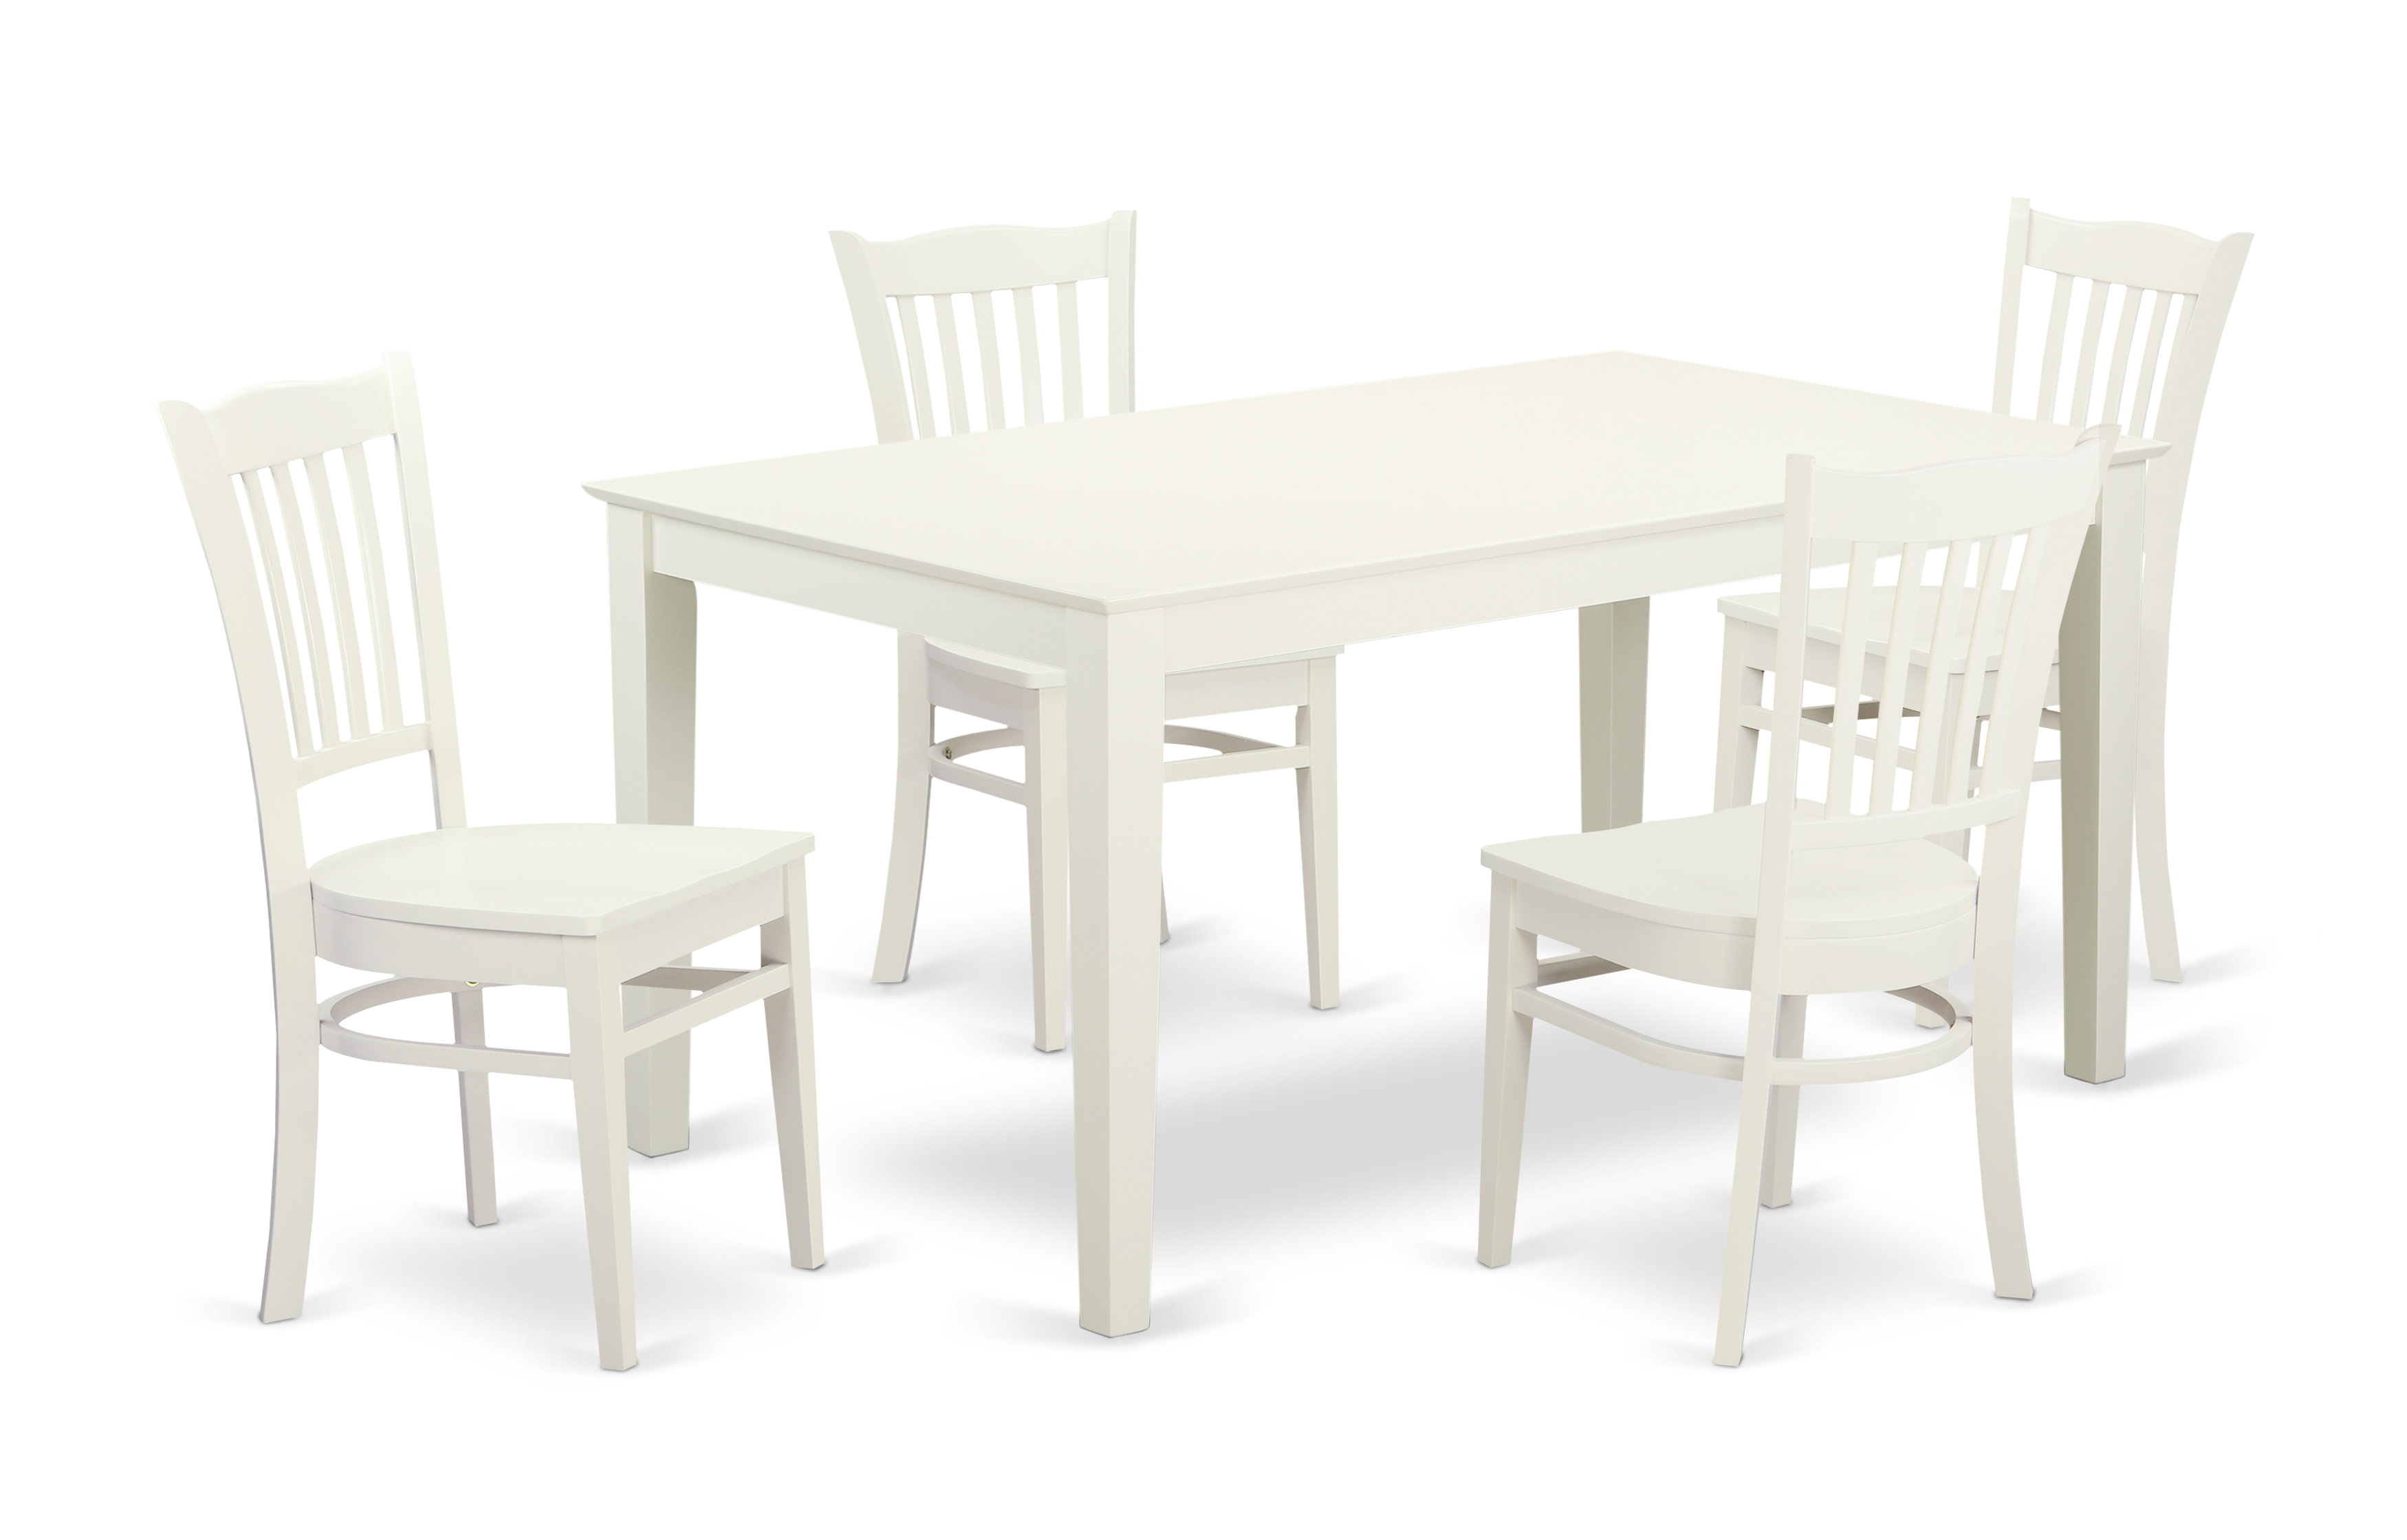 Smyrna 5 Piece Solid Wood Dining Set With Regard To Latest Smyrna 3 Piece Dining Sets (View 12 of 20)